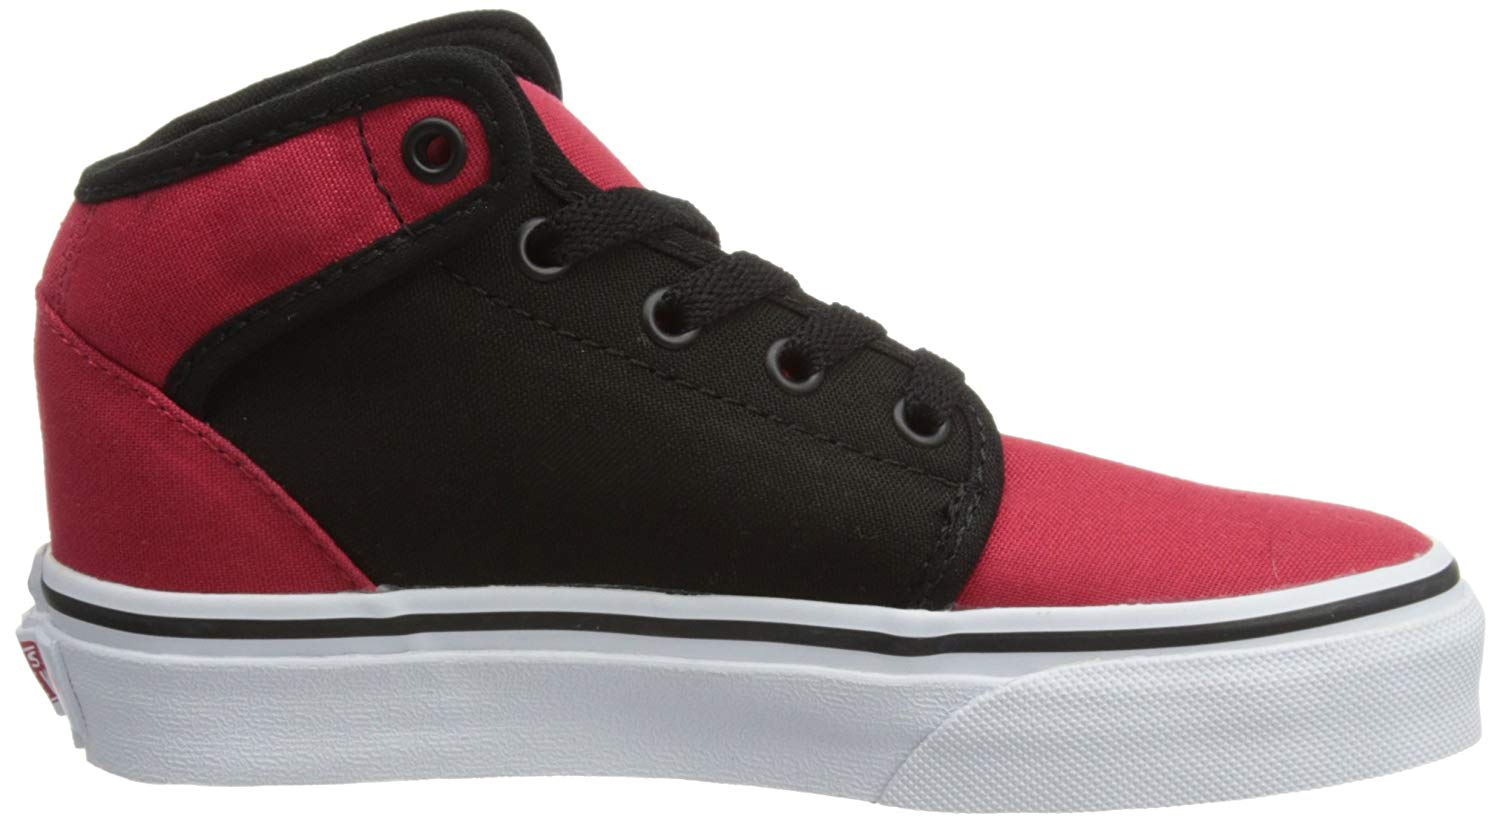 Baskets Vans 106 Mid Mixte Enfant